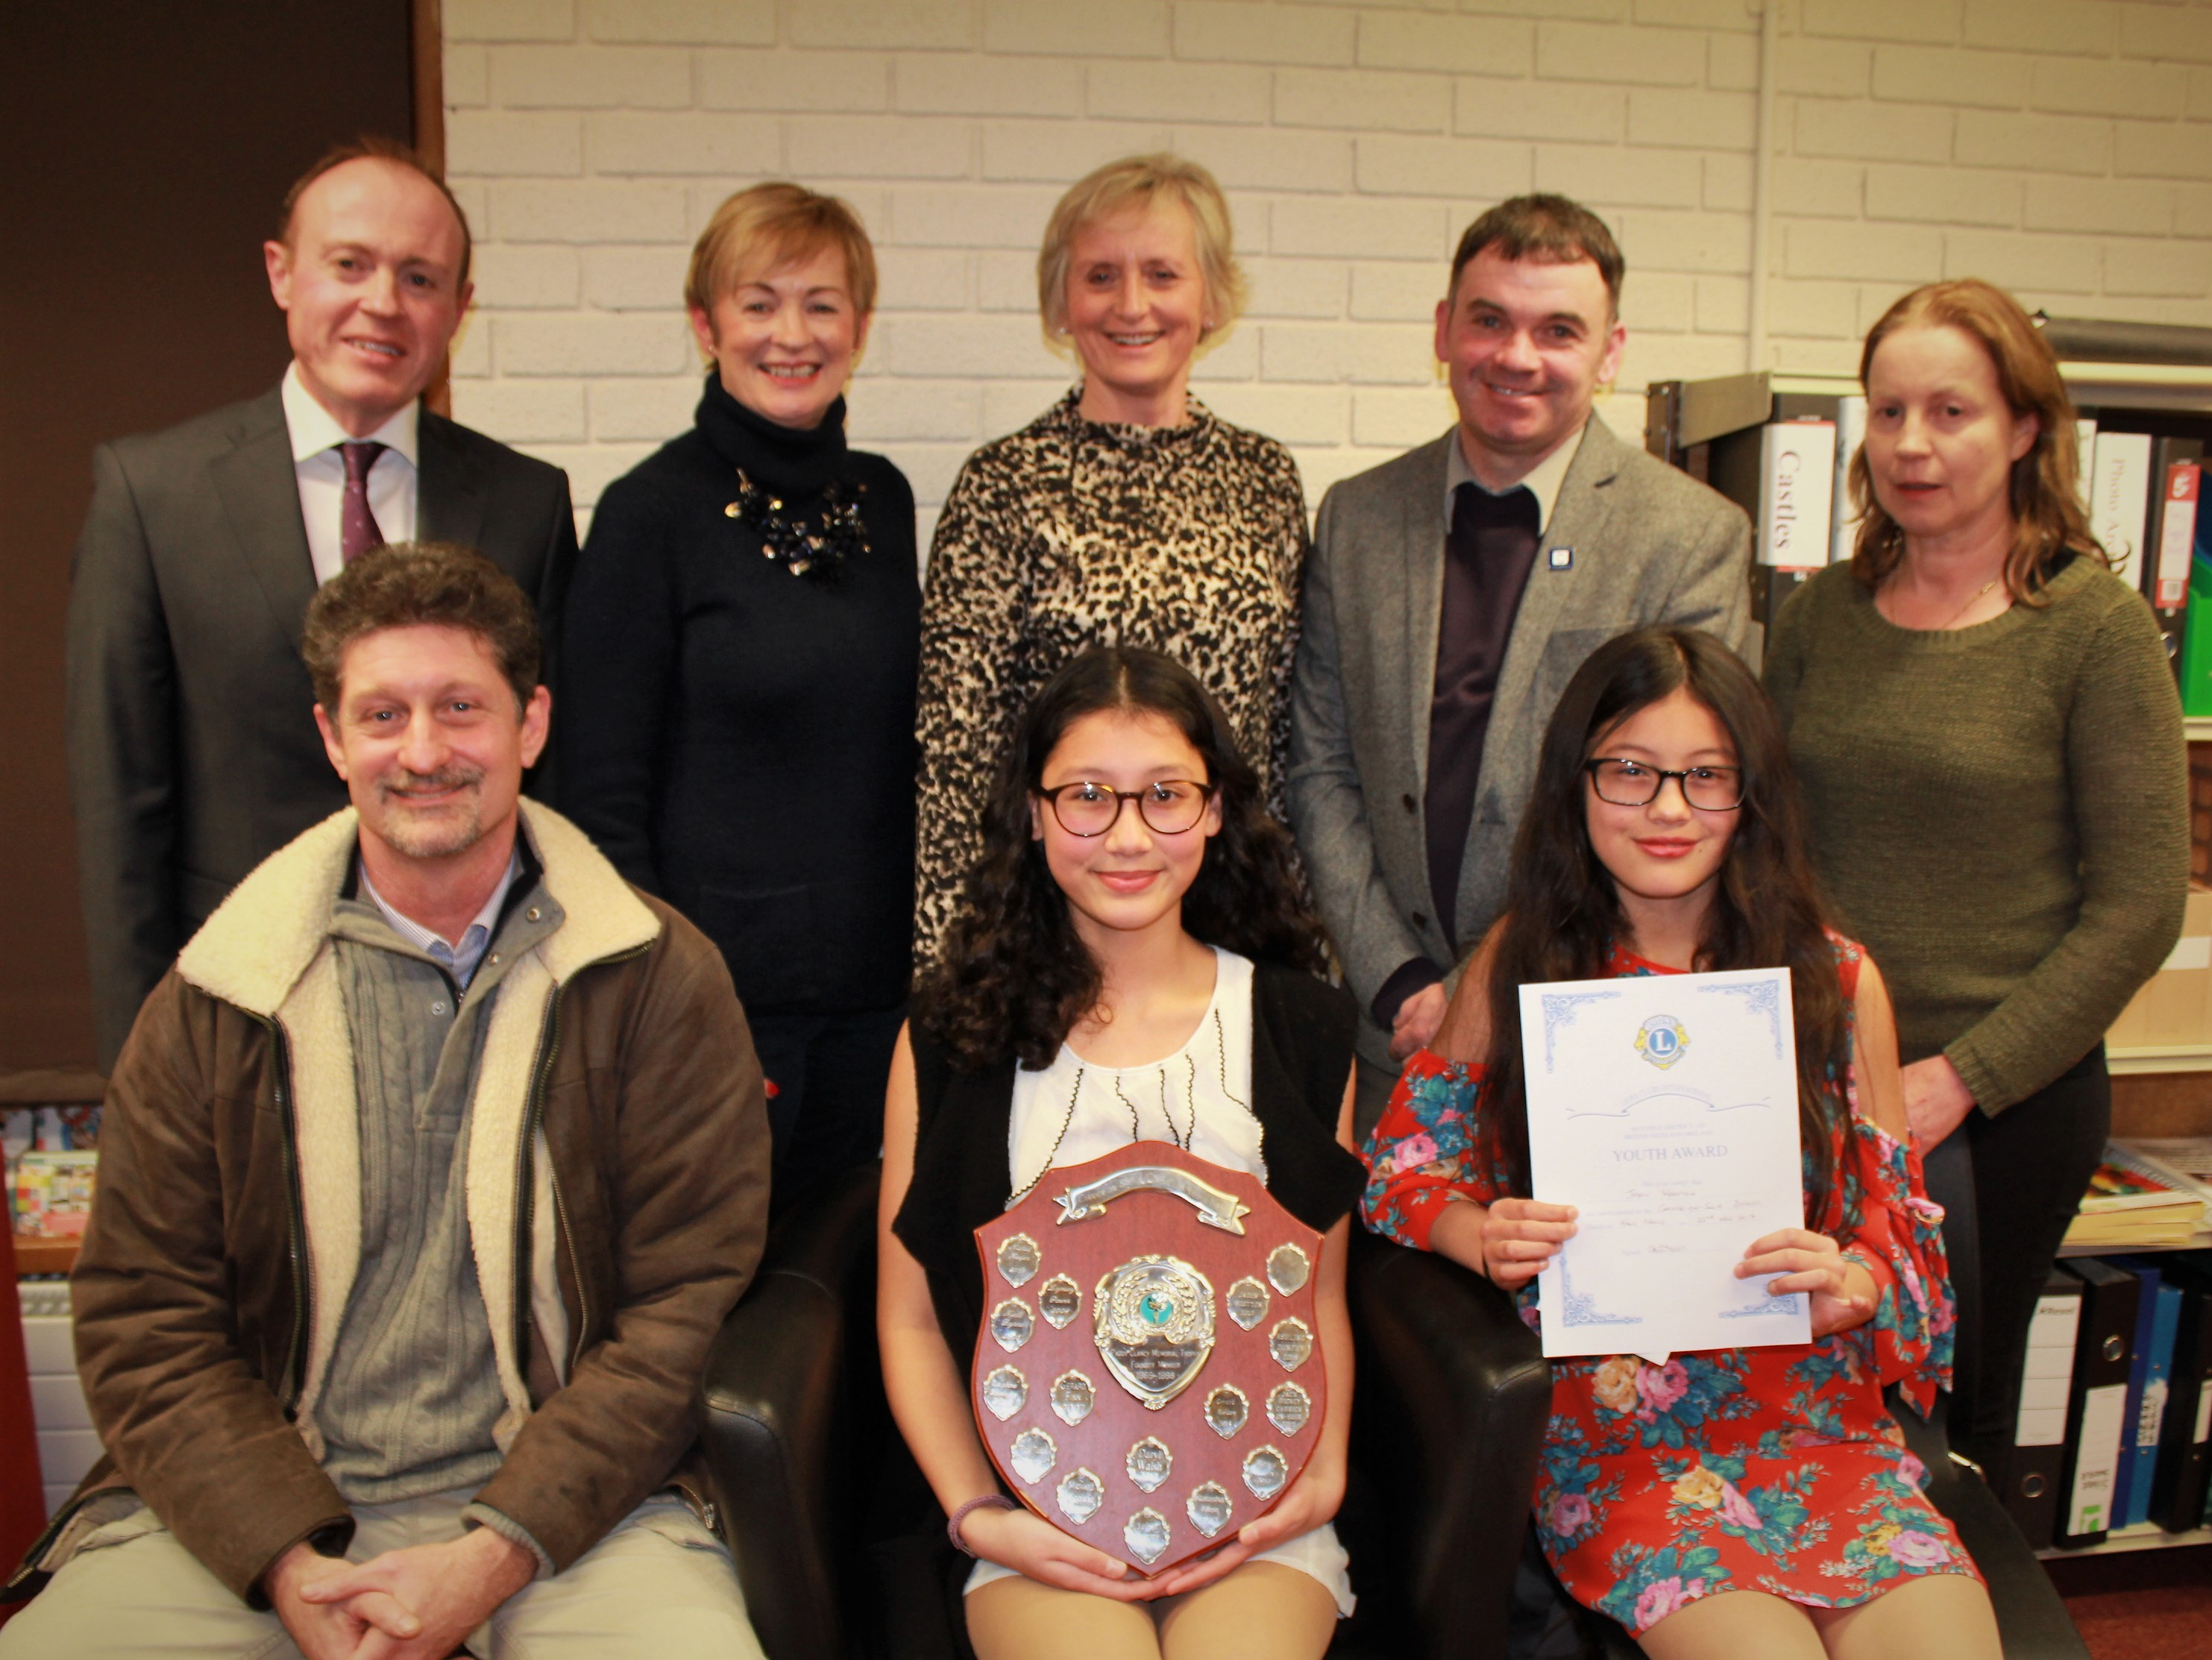 Carrick-on-Suir Library Host the Lions Club Awards